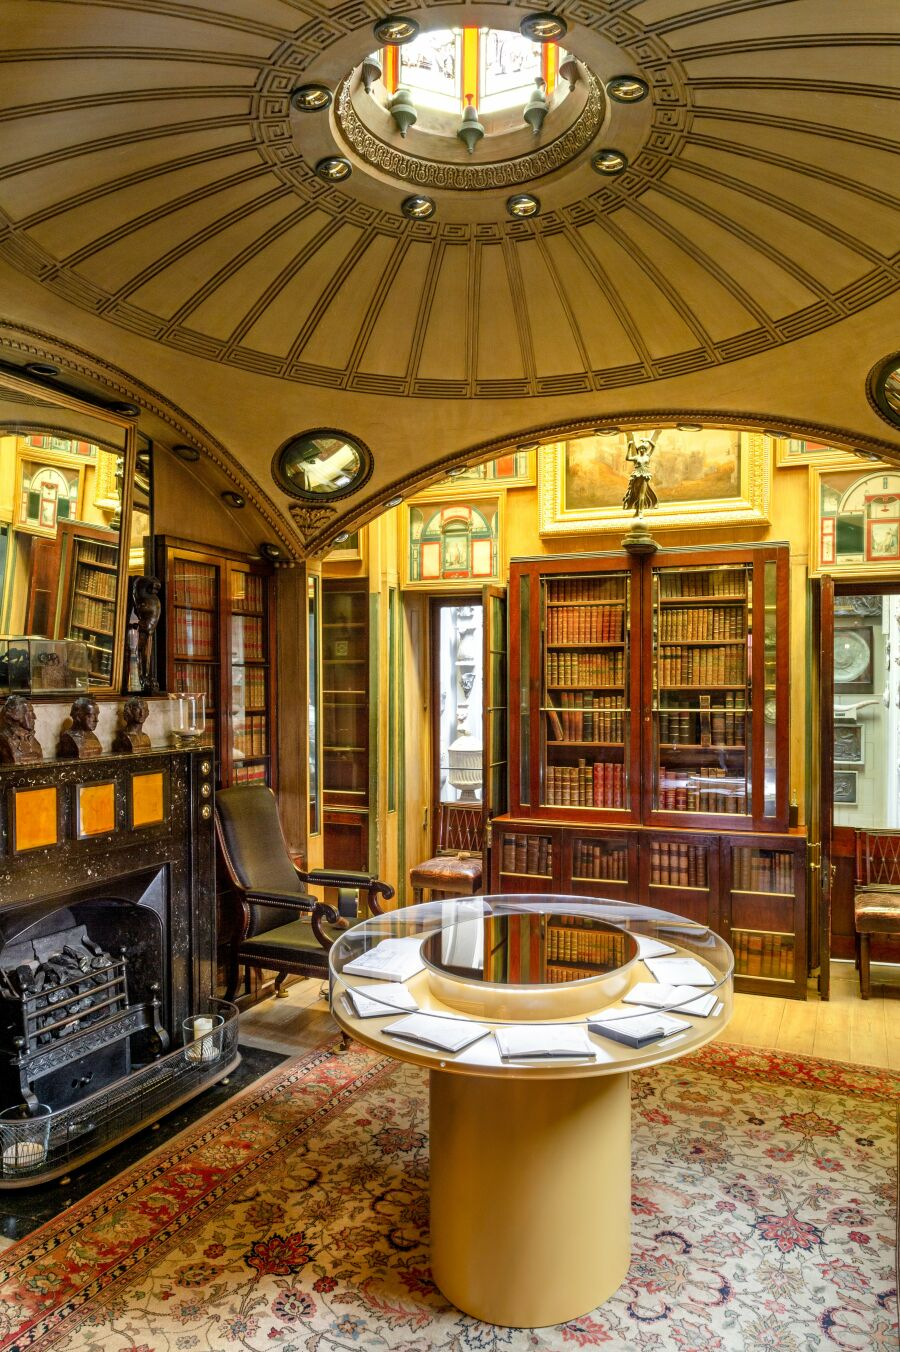 Library room with a circular perspex display cabinet.